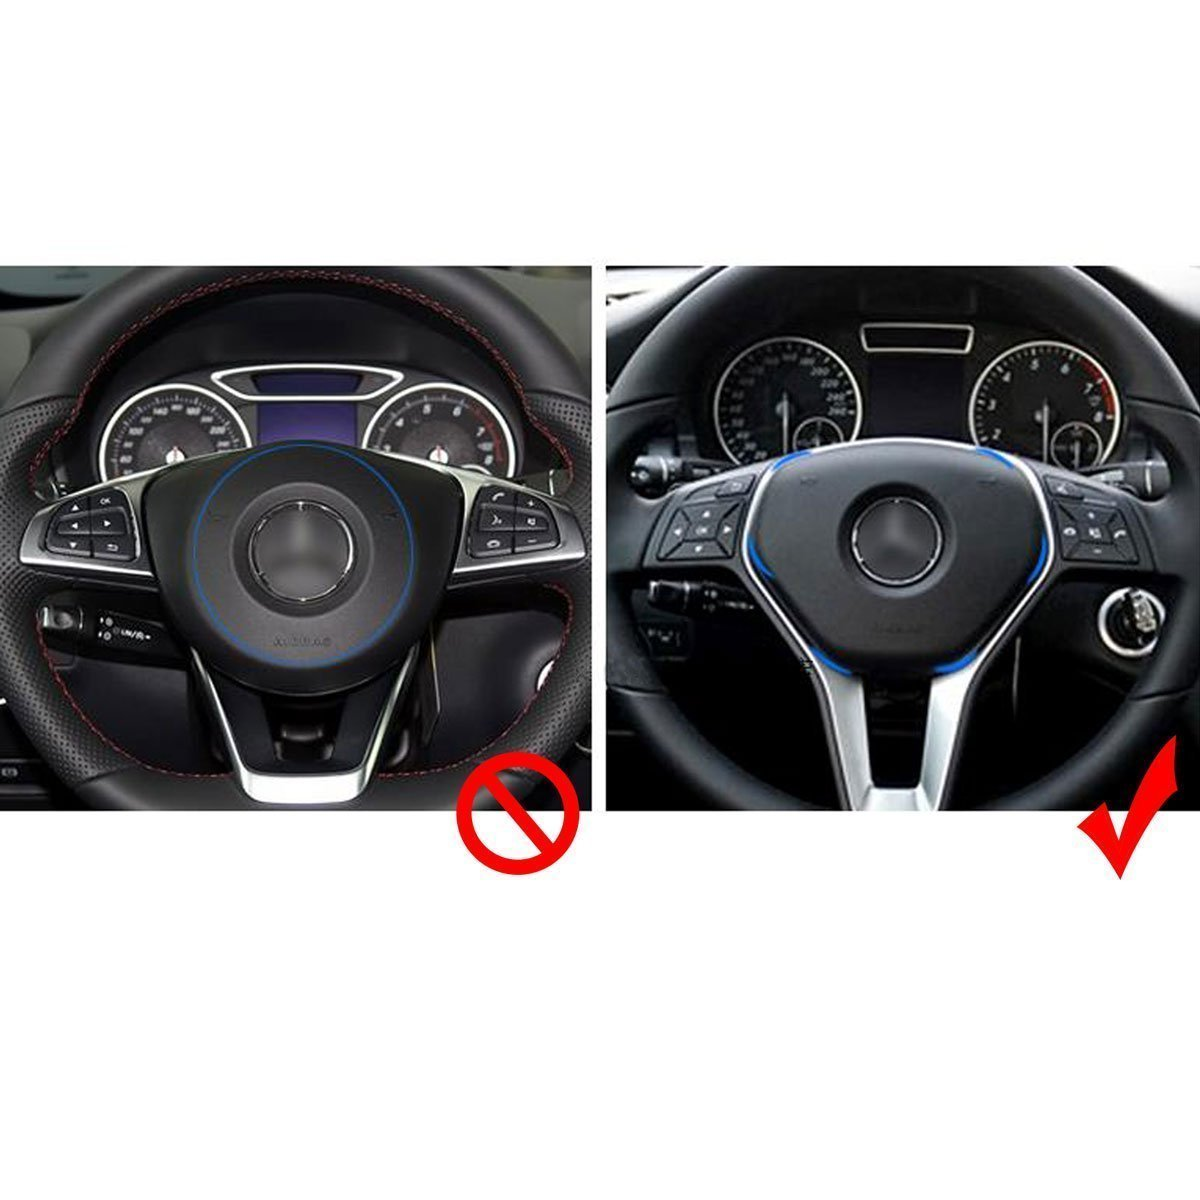 Car 3D Steering Wheel Center Logo Trim Ring for Mercedes Benz B C GLK Xotic Tech Car Interior Decoration Aluminum Alloy Blue Xotic Tech Direct